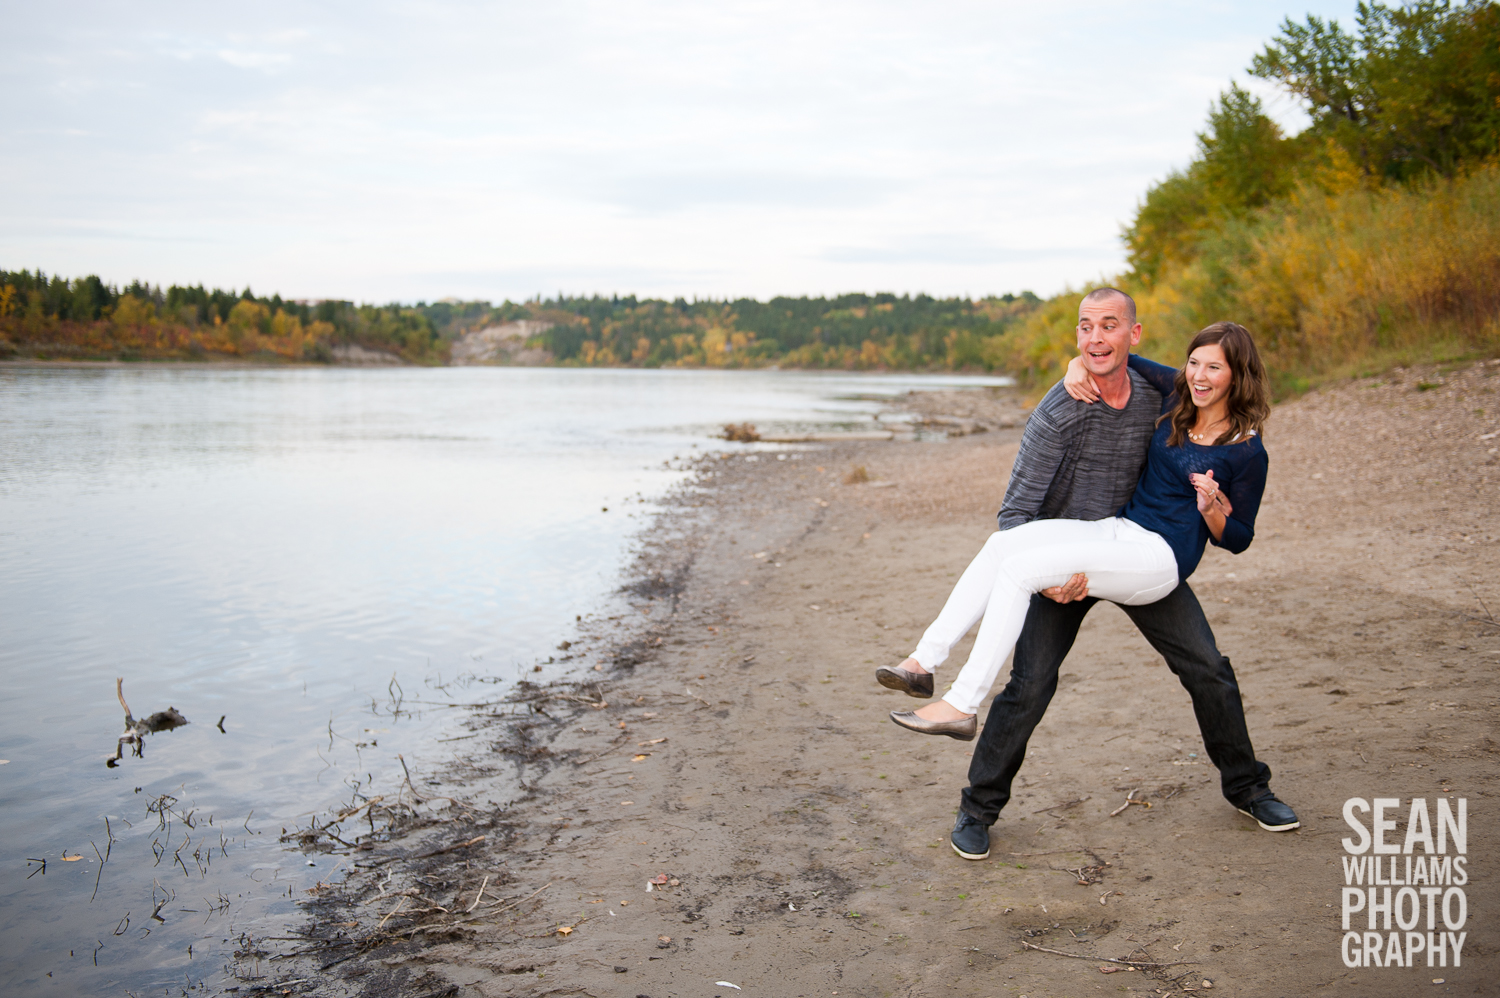 engagement-wedding-edmonton-photographer-sean-williams-love-2.jpg